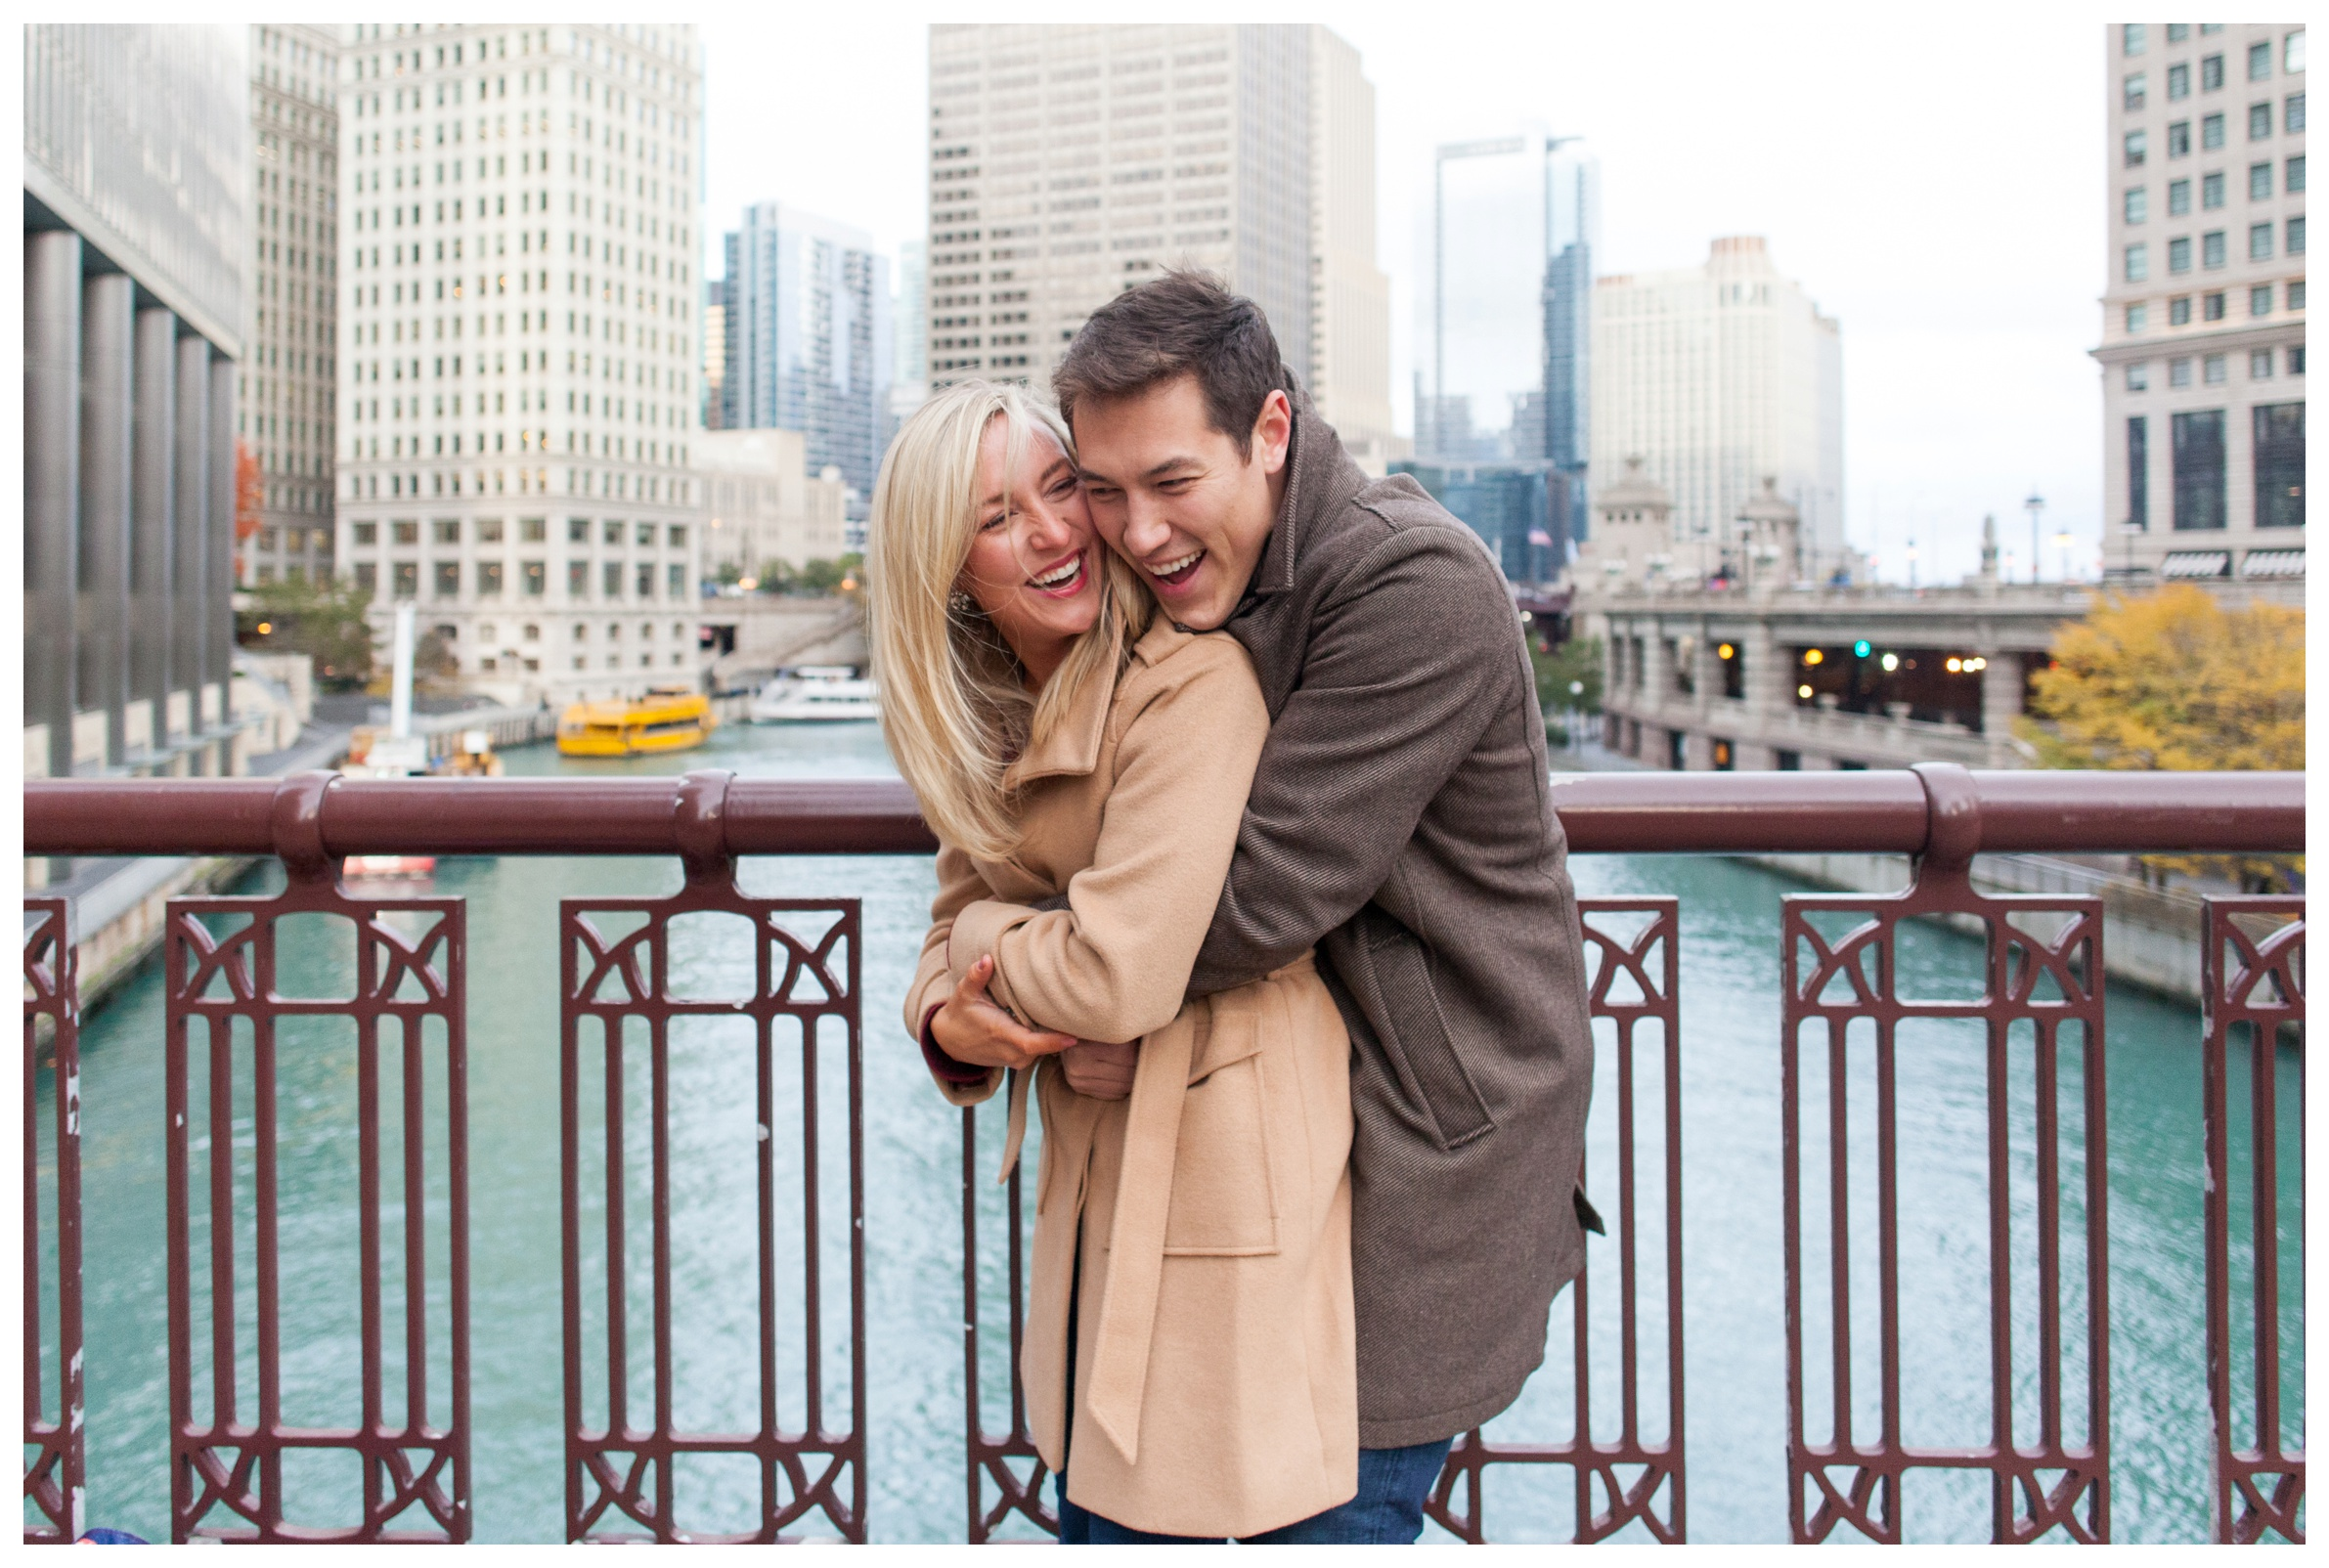 chicago-bridges-engagement-photography